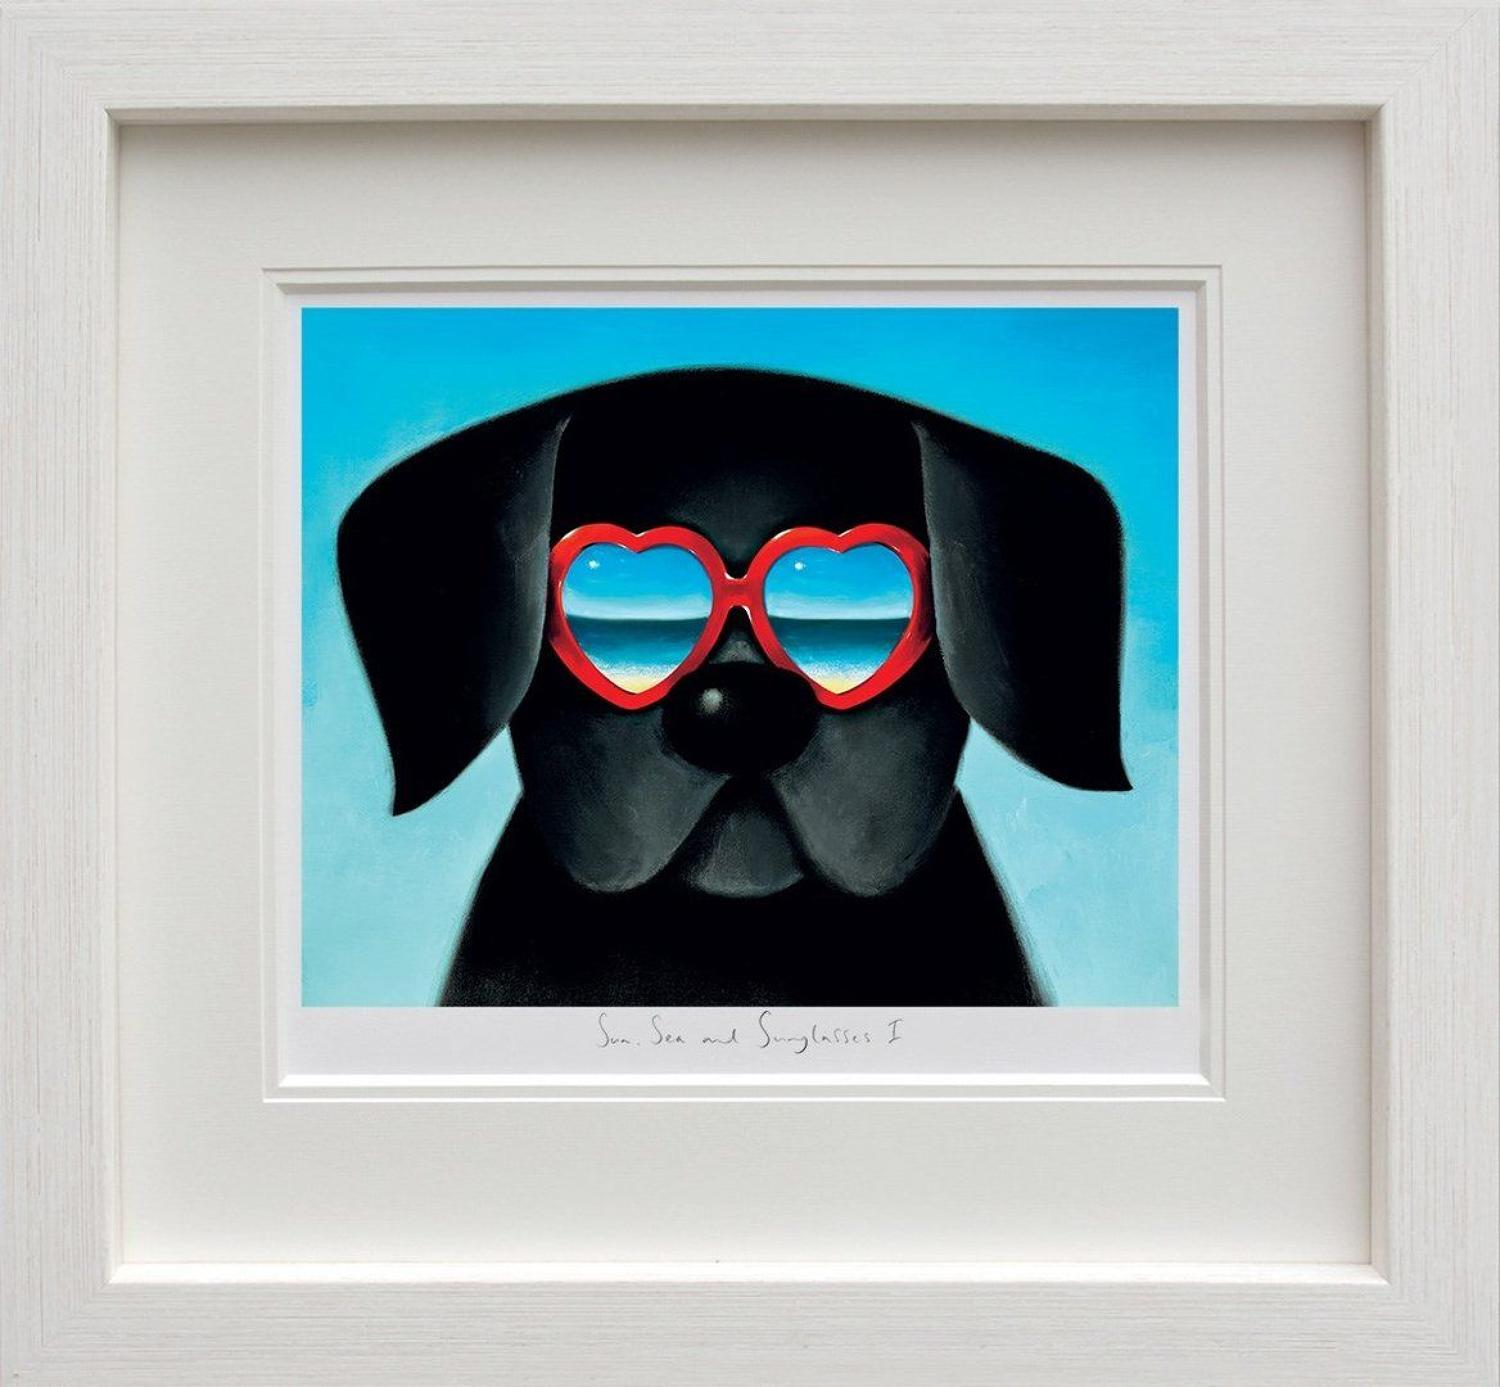 Sun Sea And Sunglasses I by Doug Hyde Framed Art Print